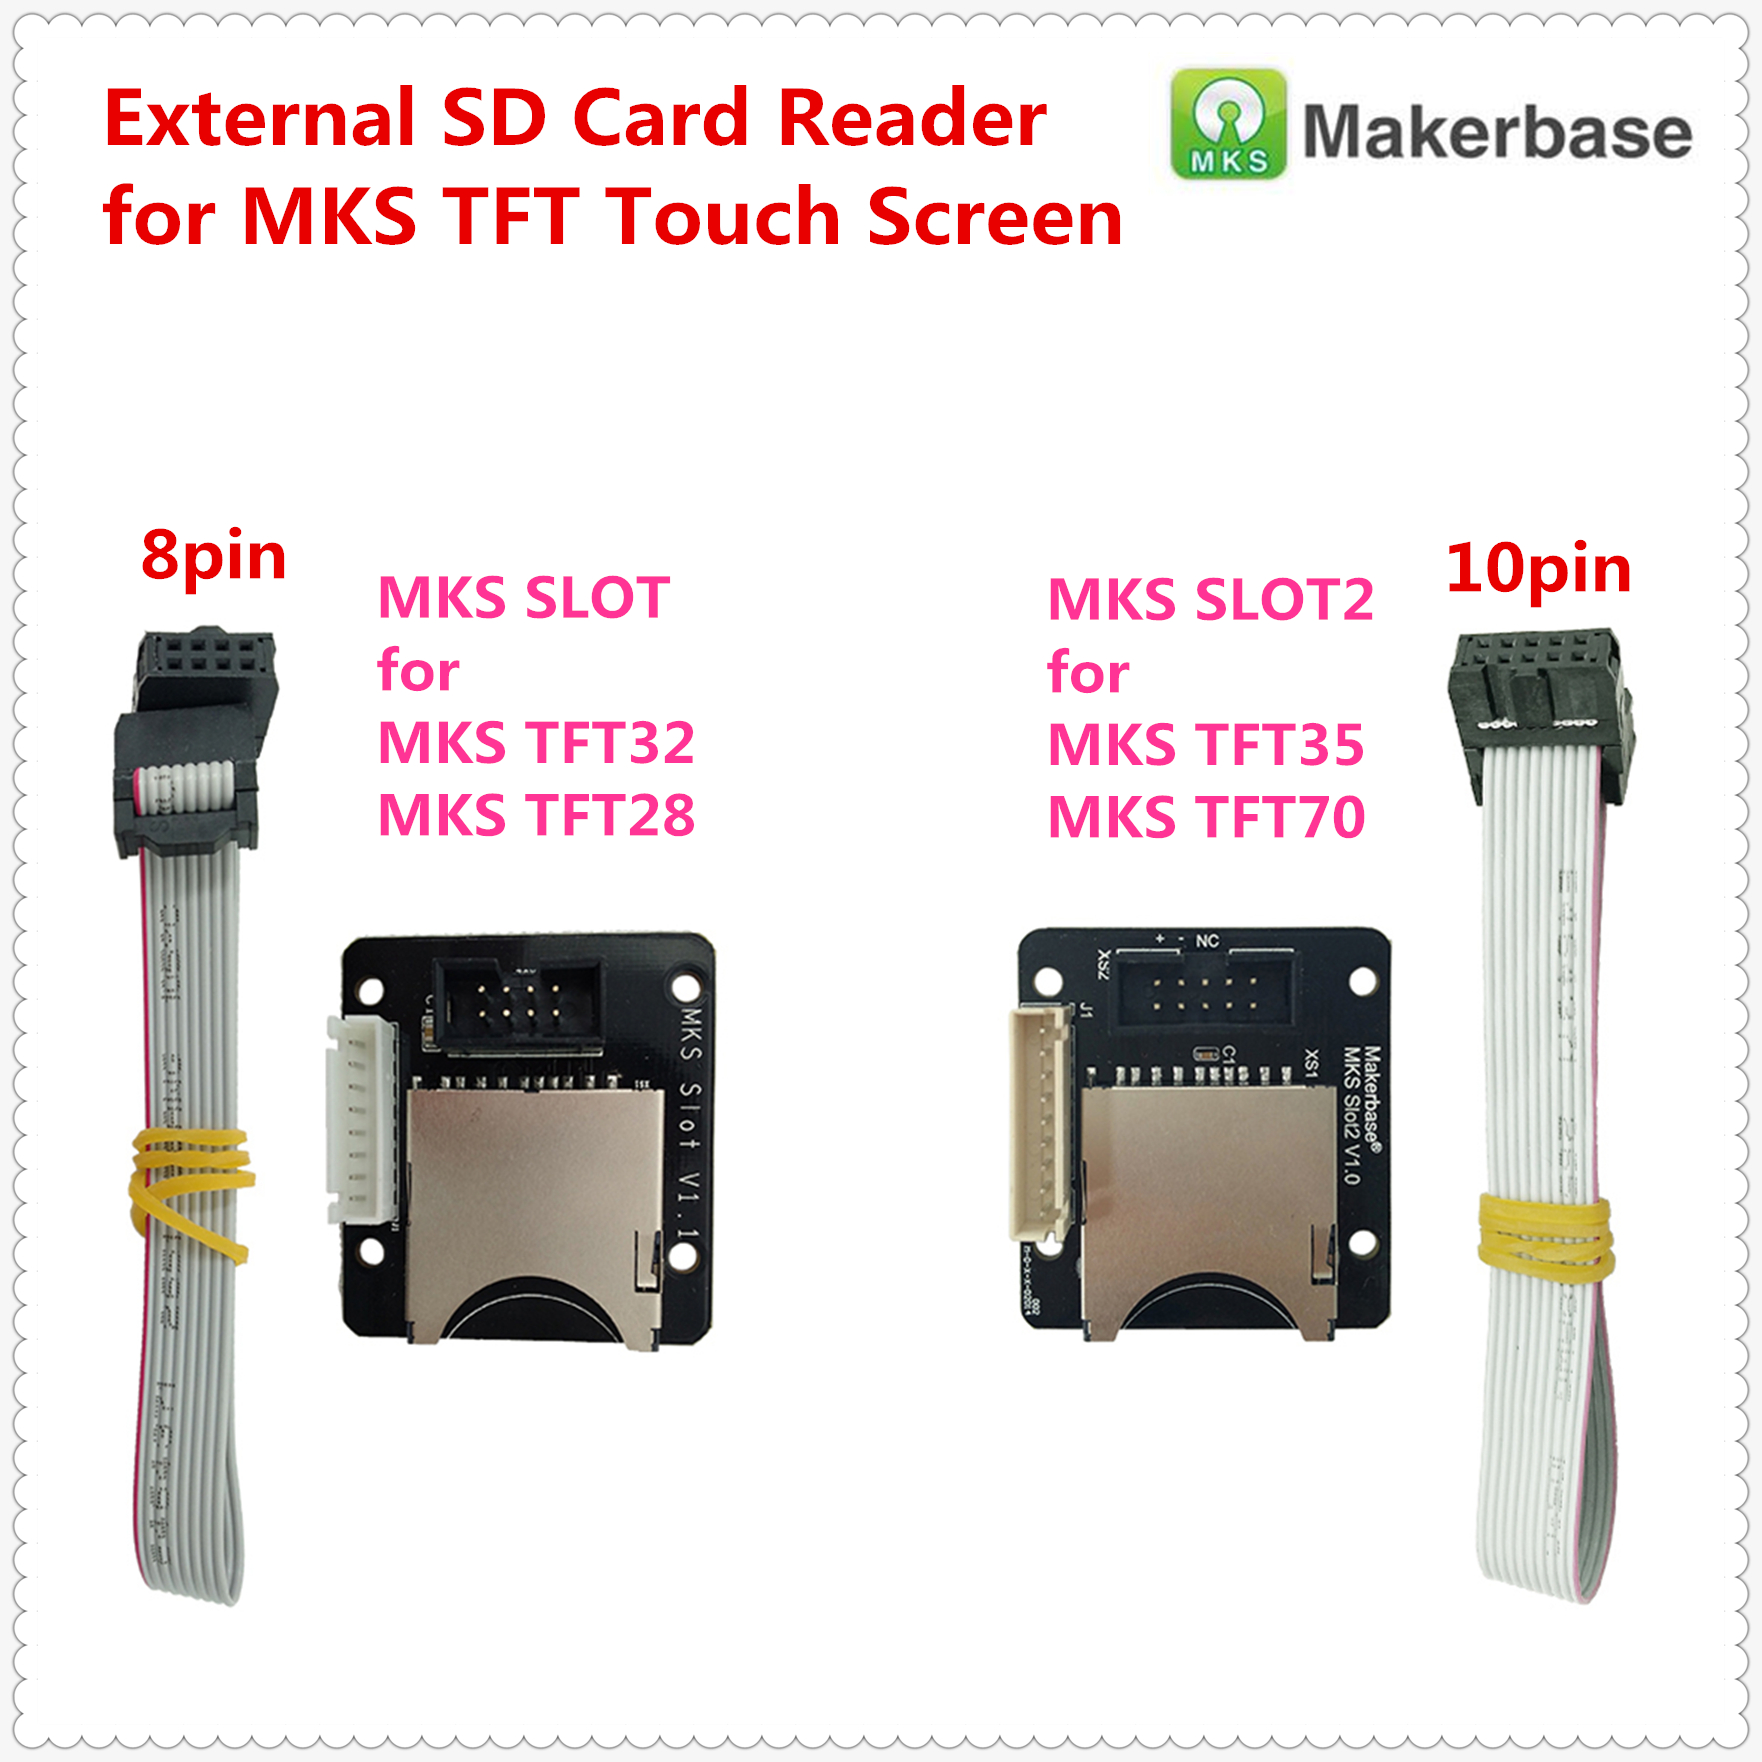 MKS SLOT / Slot2 Breakout Adapter External SD Card Reader Module Extra Sd Slot Expander Socket For MKS TFT Touch Screen Display